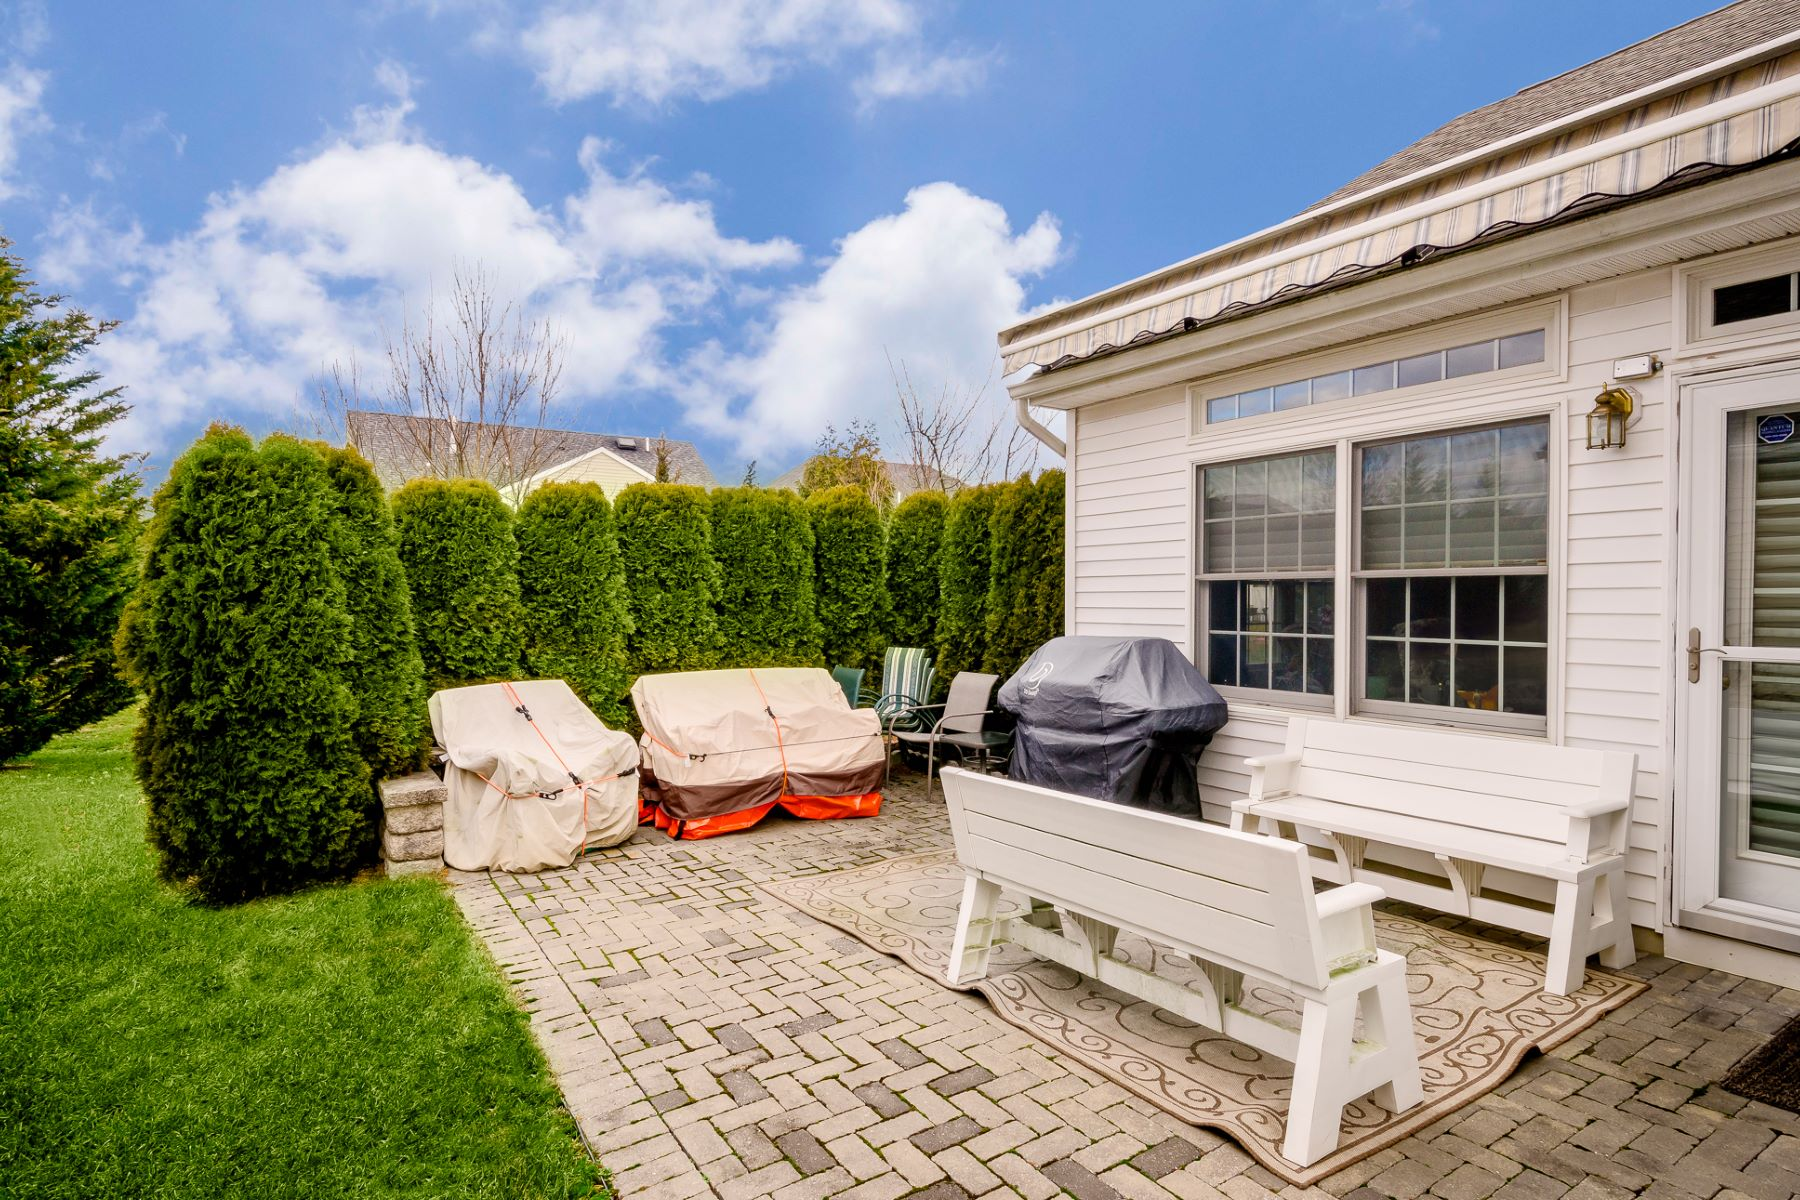 Additional photo for property listing at Easy Living at Elements at West Windsor! 21 San Marco Street, West Windsor, New Jersey 08550 United States